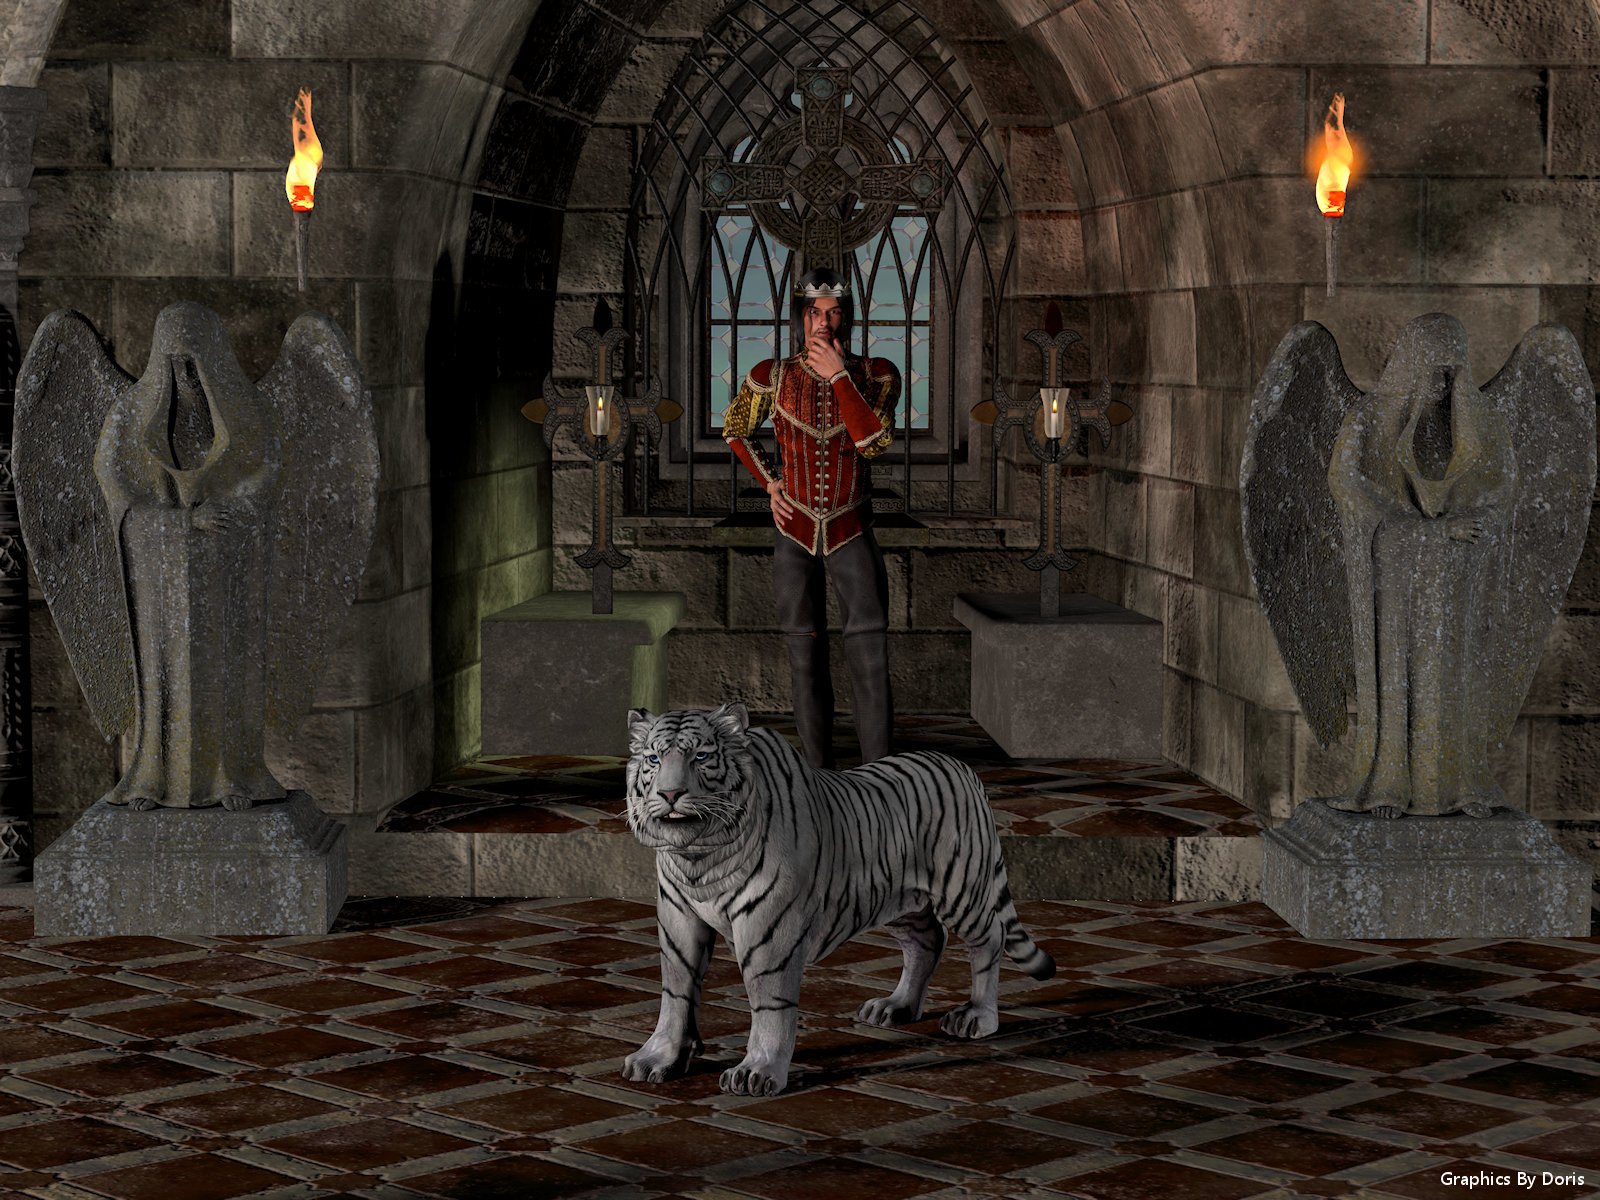 The Prince And His Tiger